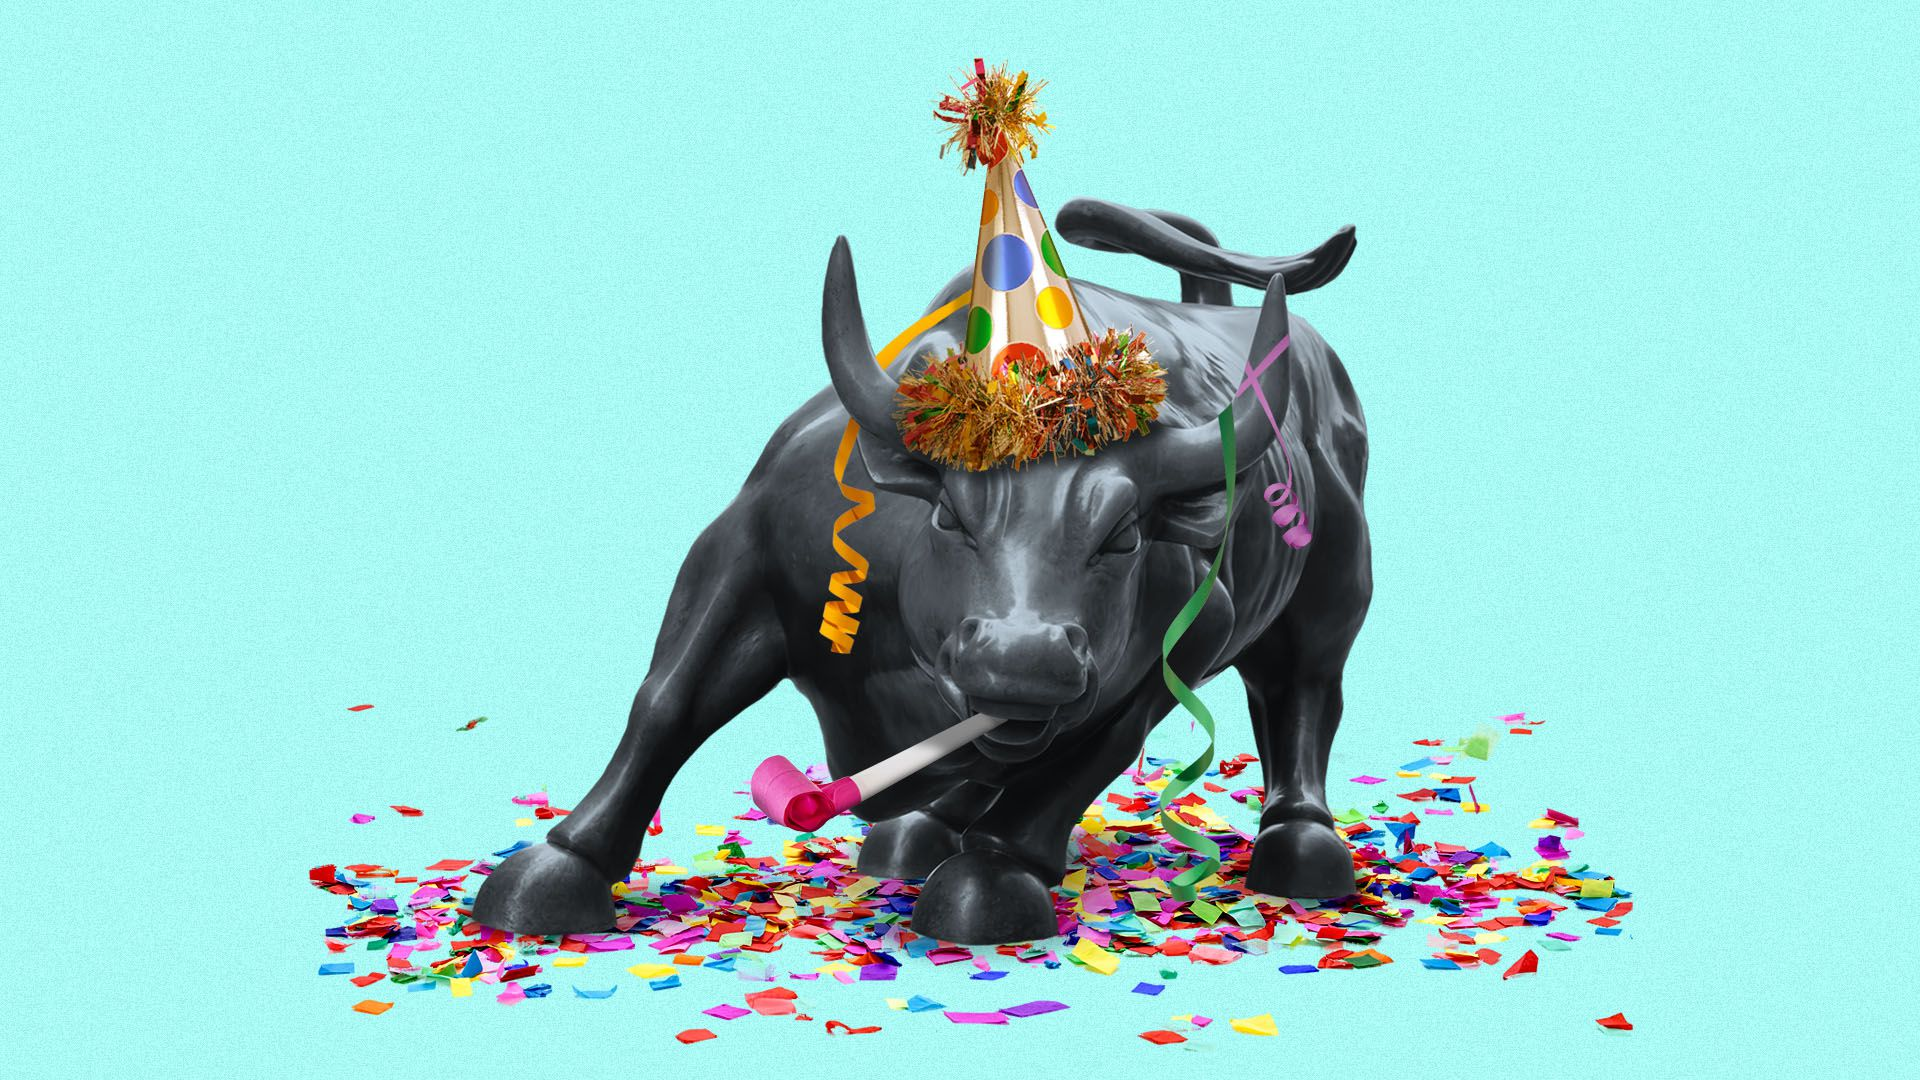 Illustration of the Wall Street bull wearing a party hat and covered in streamers and confetti.